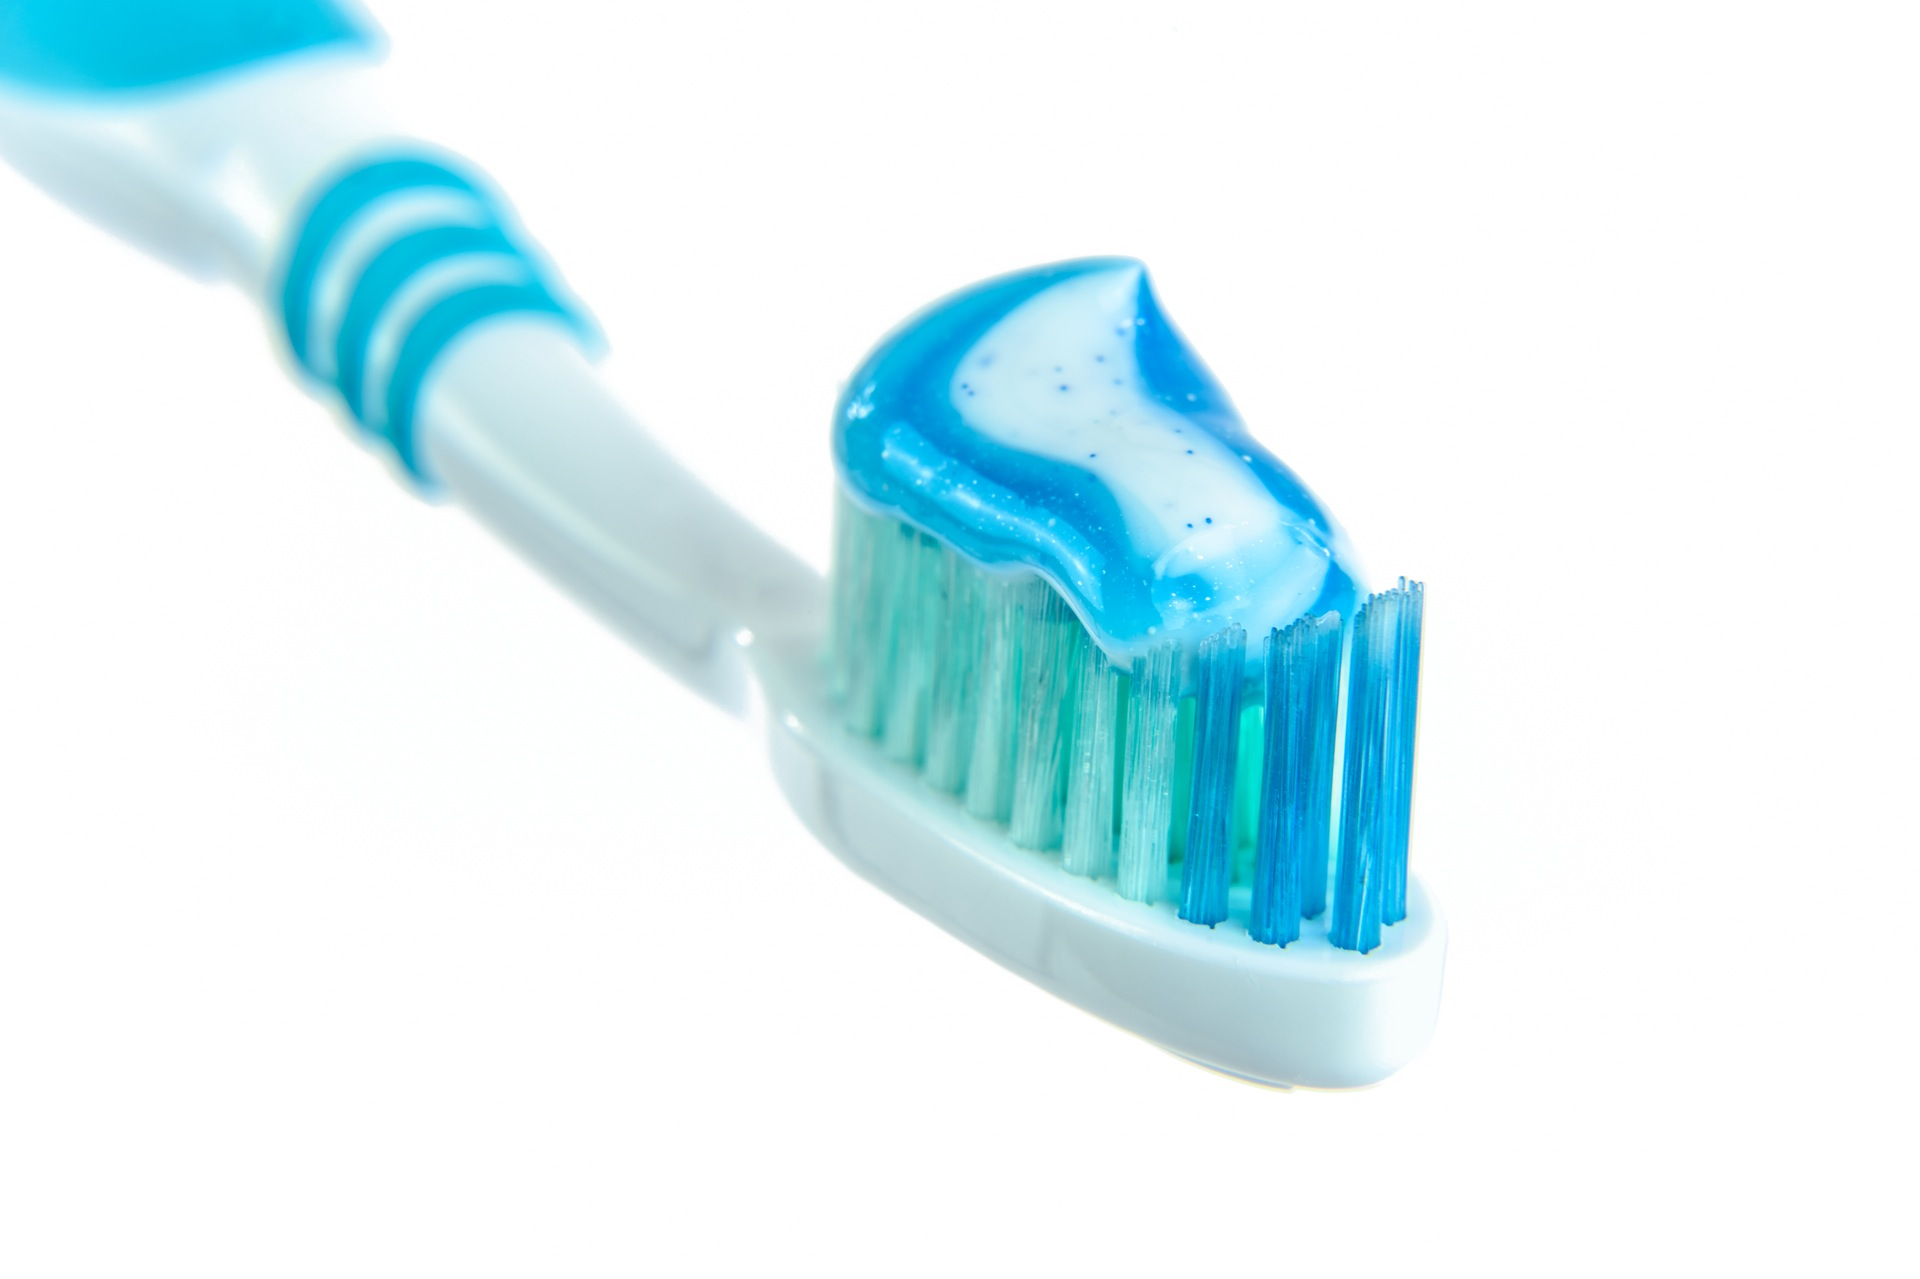 Prevent cavities by brushing and flossing daily